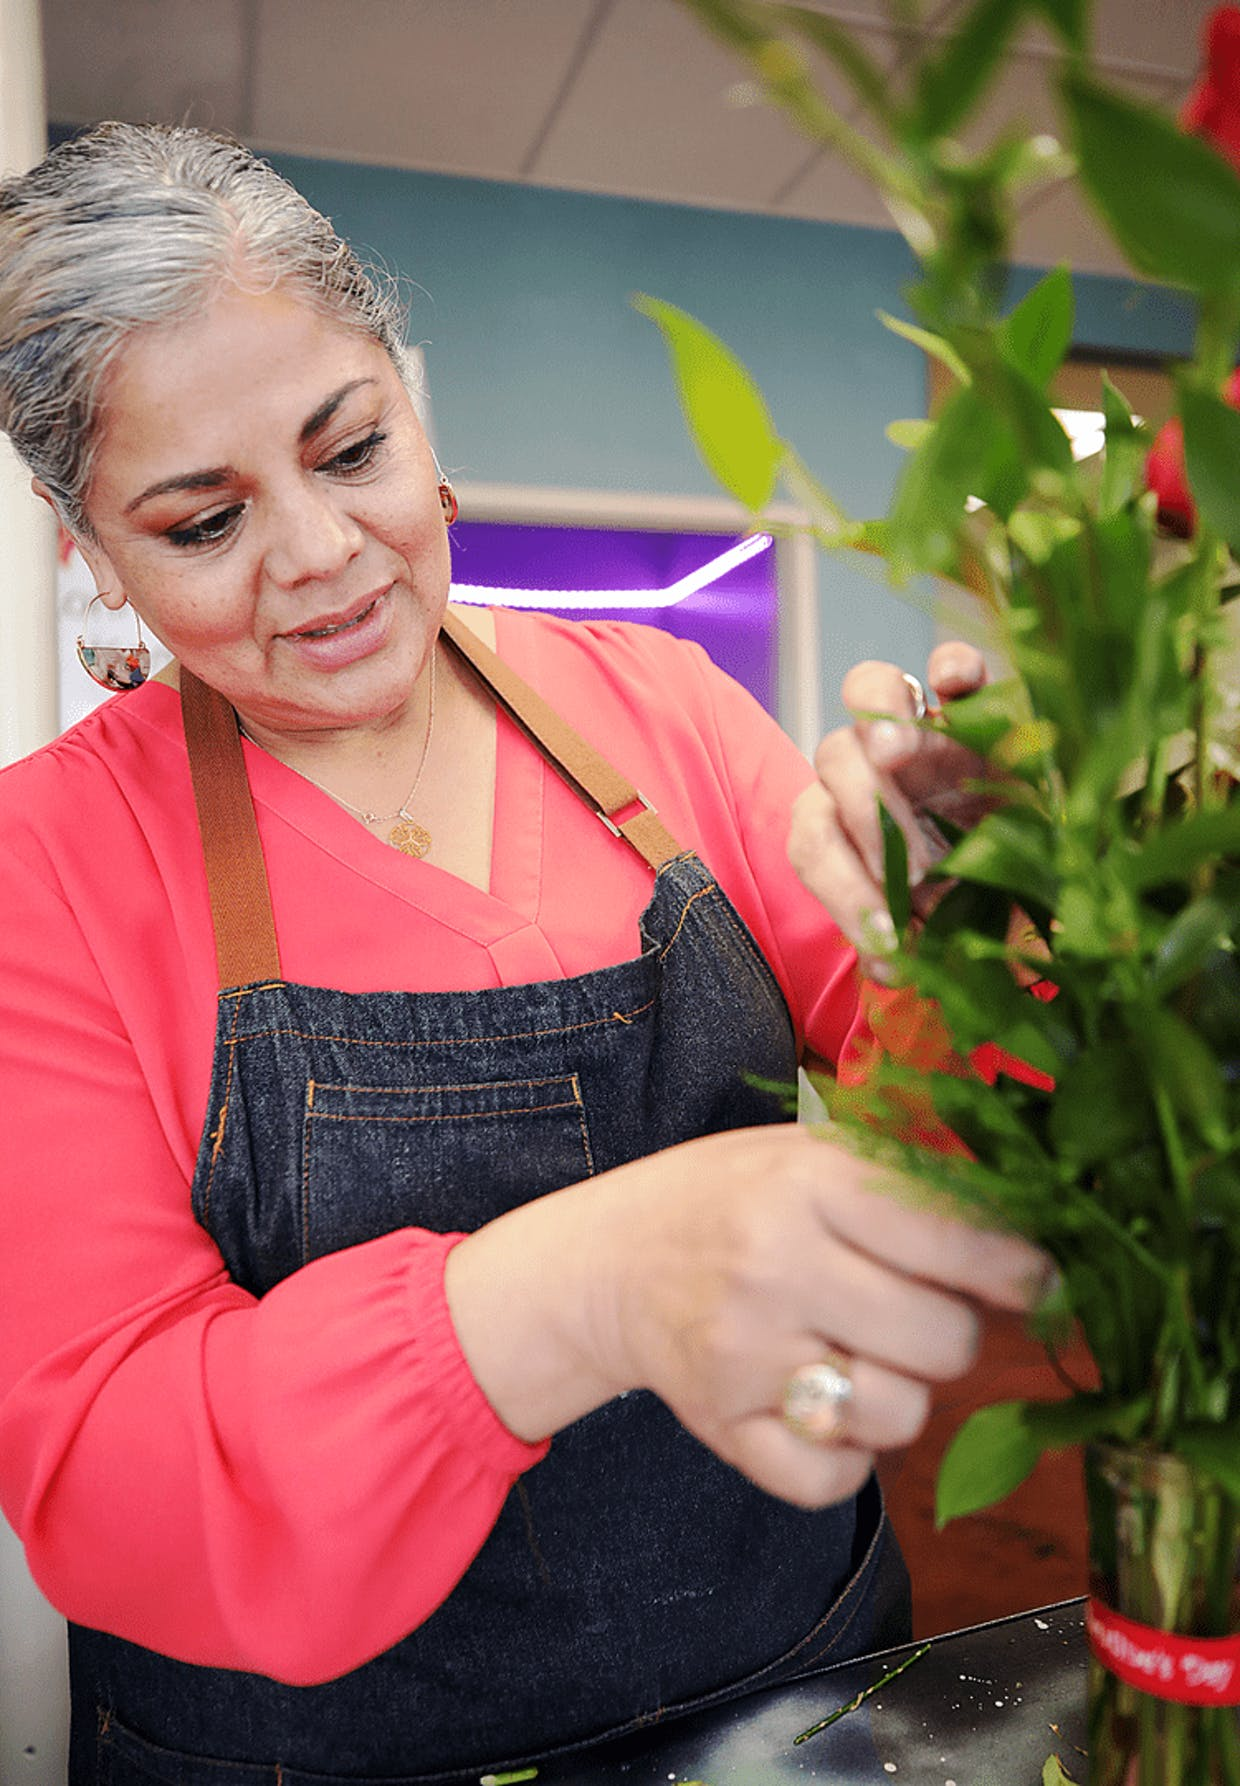 Fridas Studio Florist owner Edda Delacruz is gearing up for Valentine's Day in her new Fry Boulevard location.